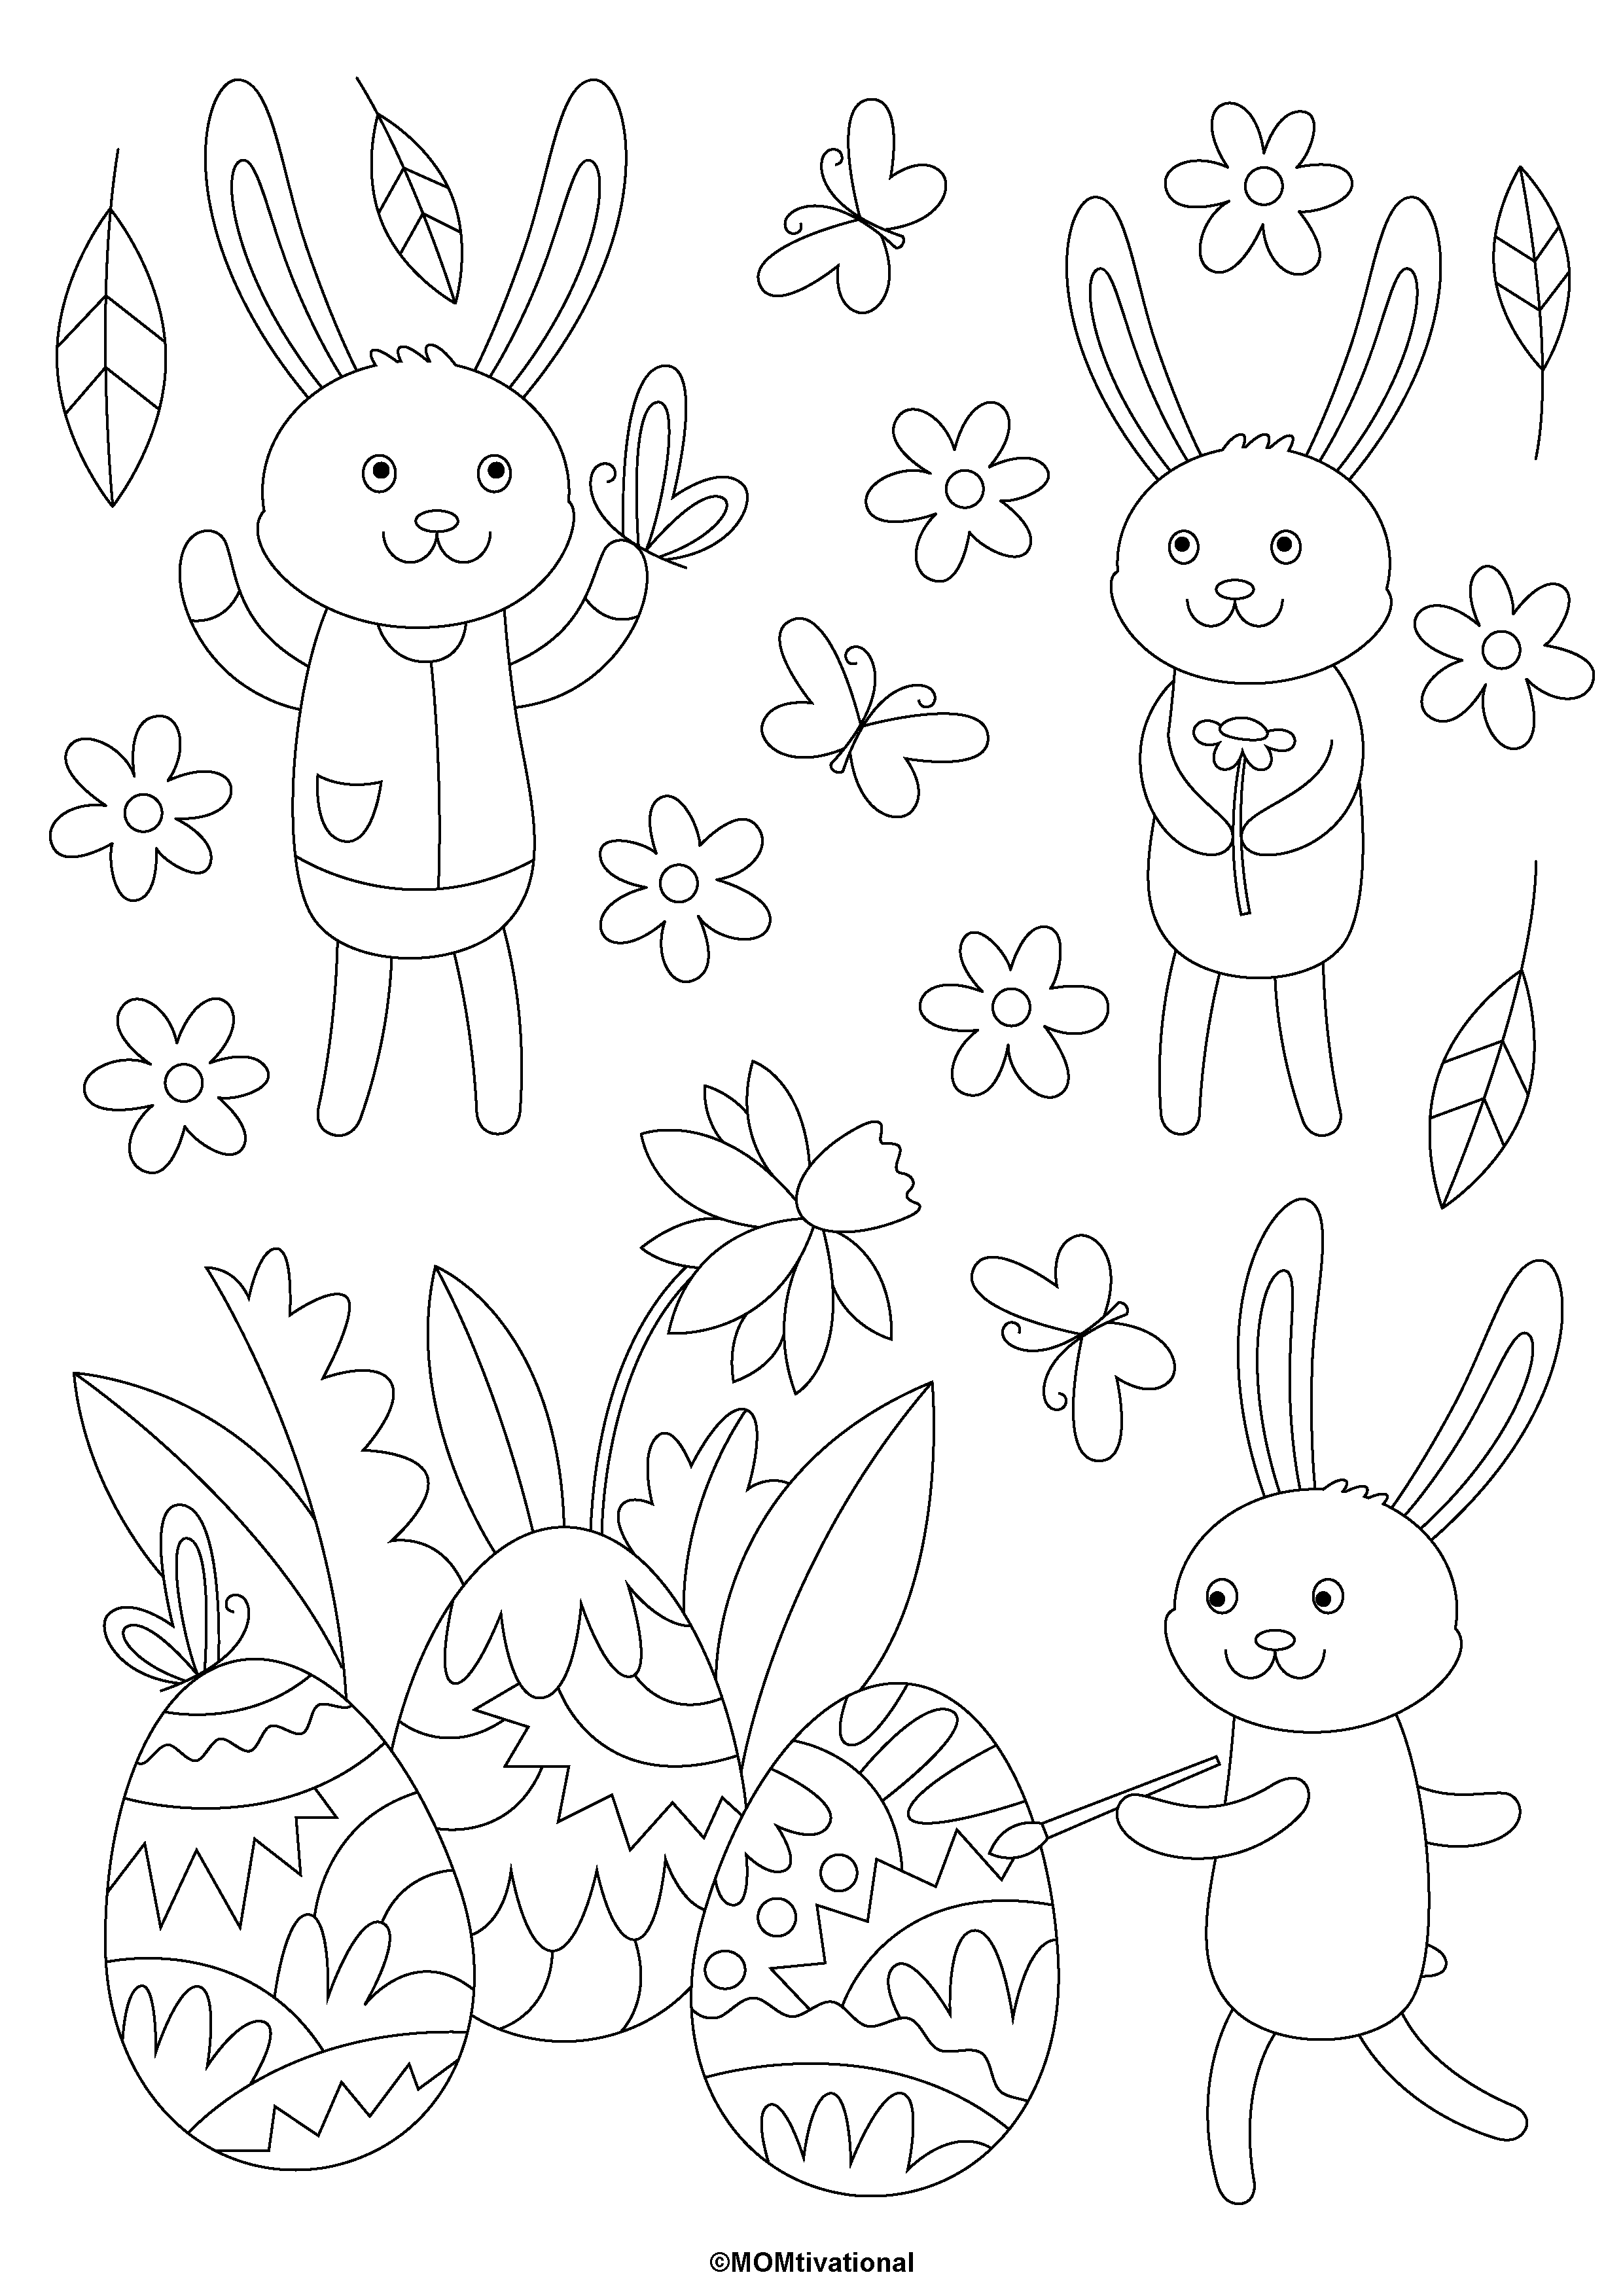 37+ Printable easter coloring pages activities ideas in 2021